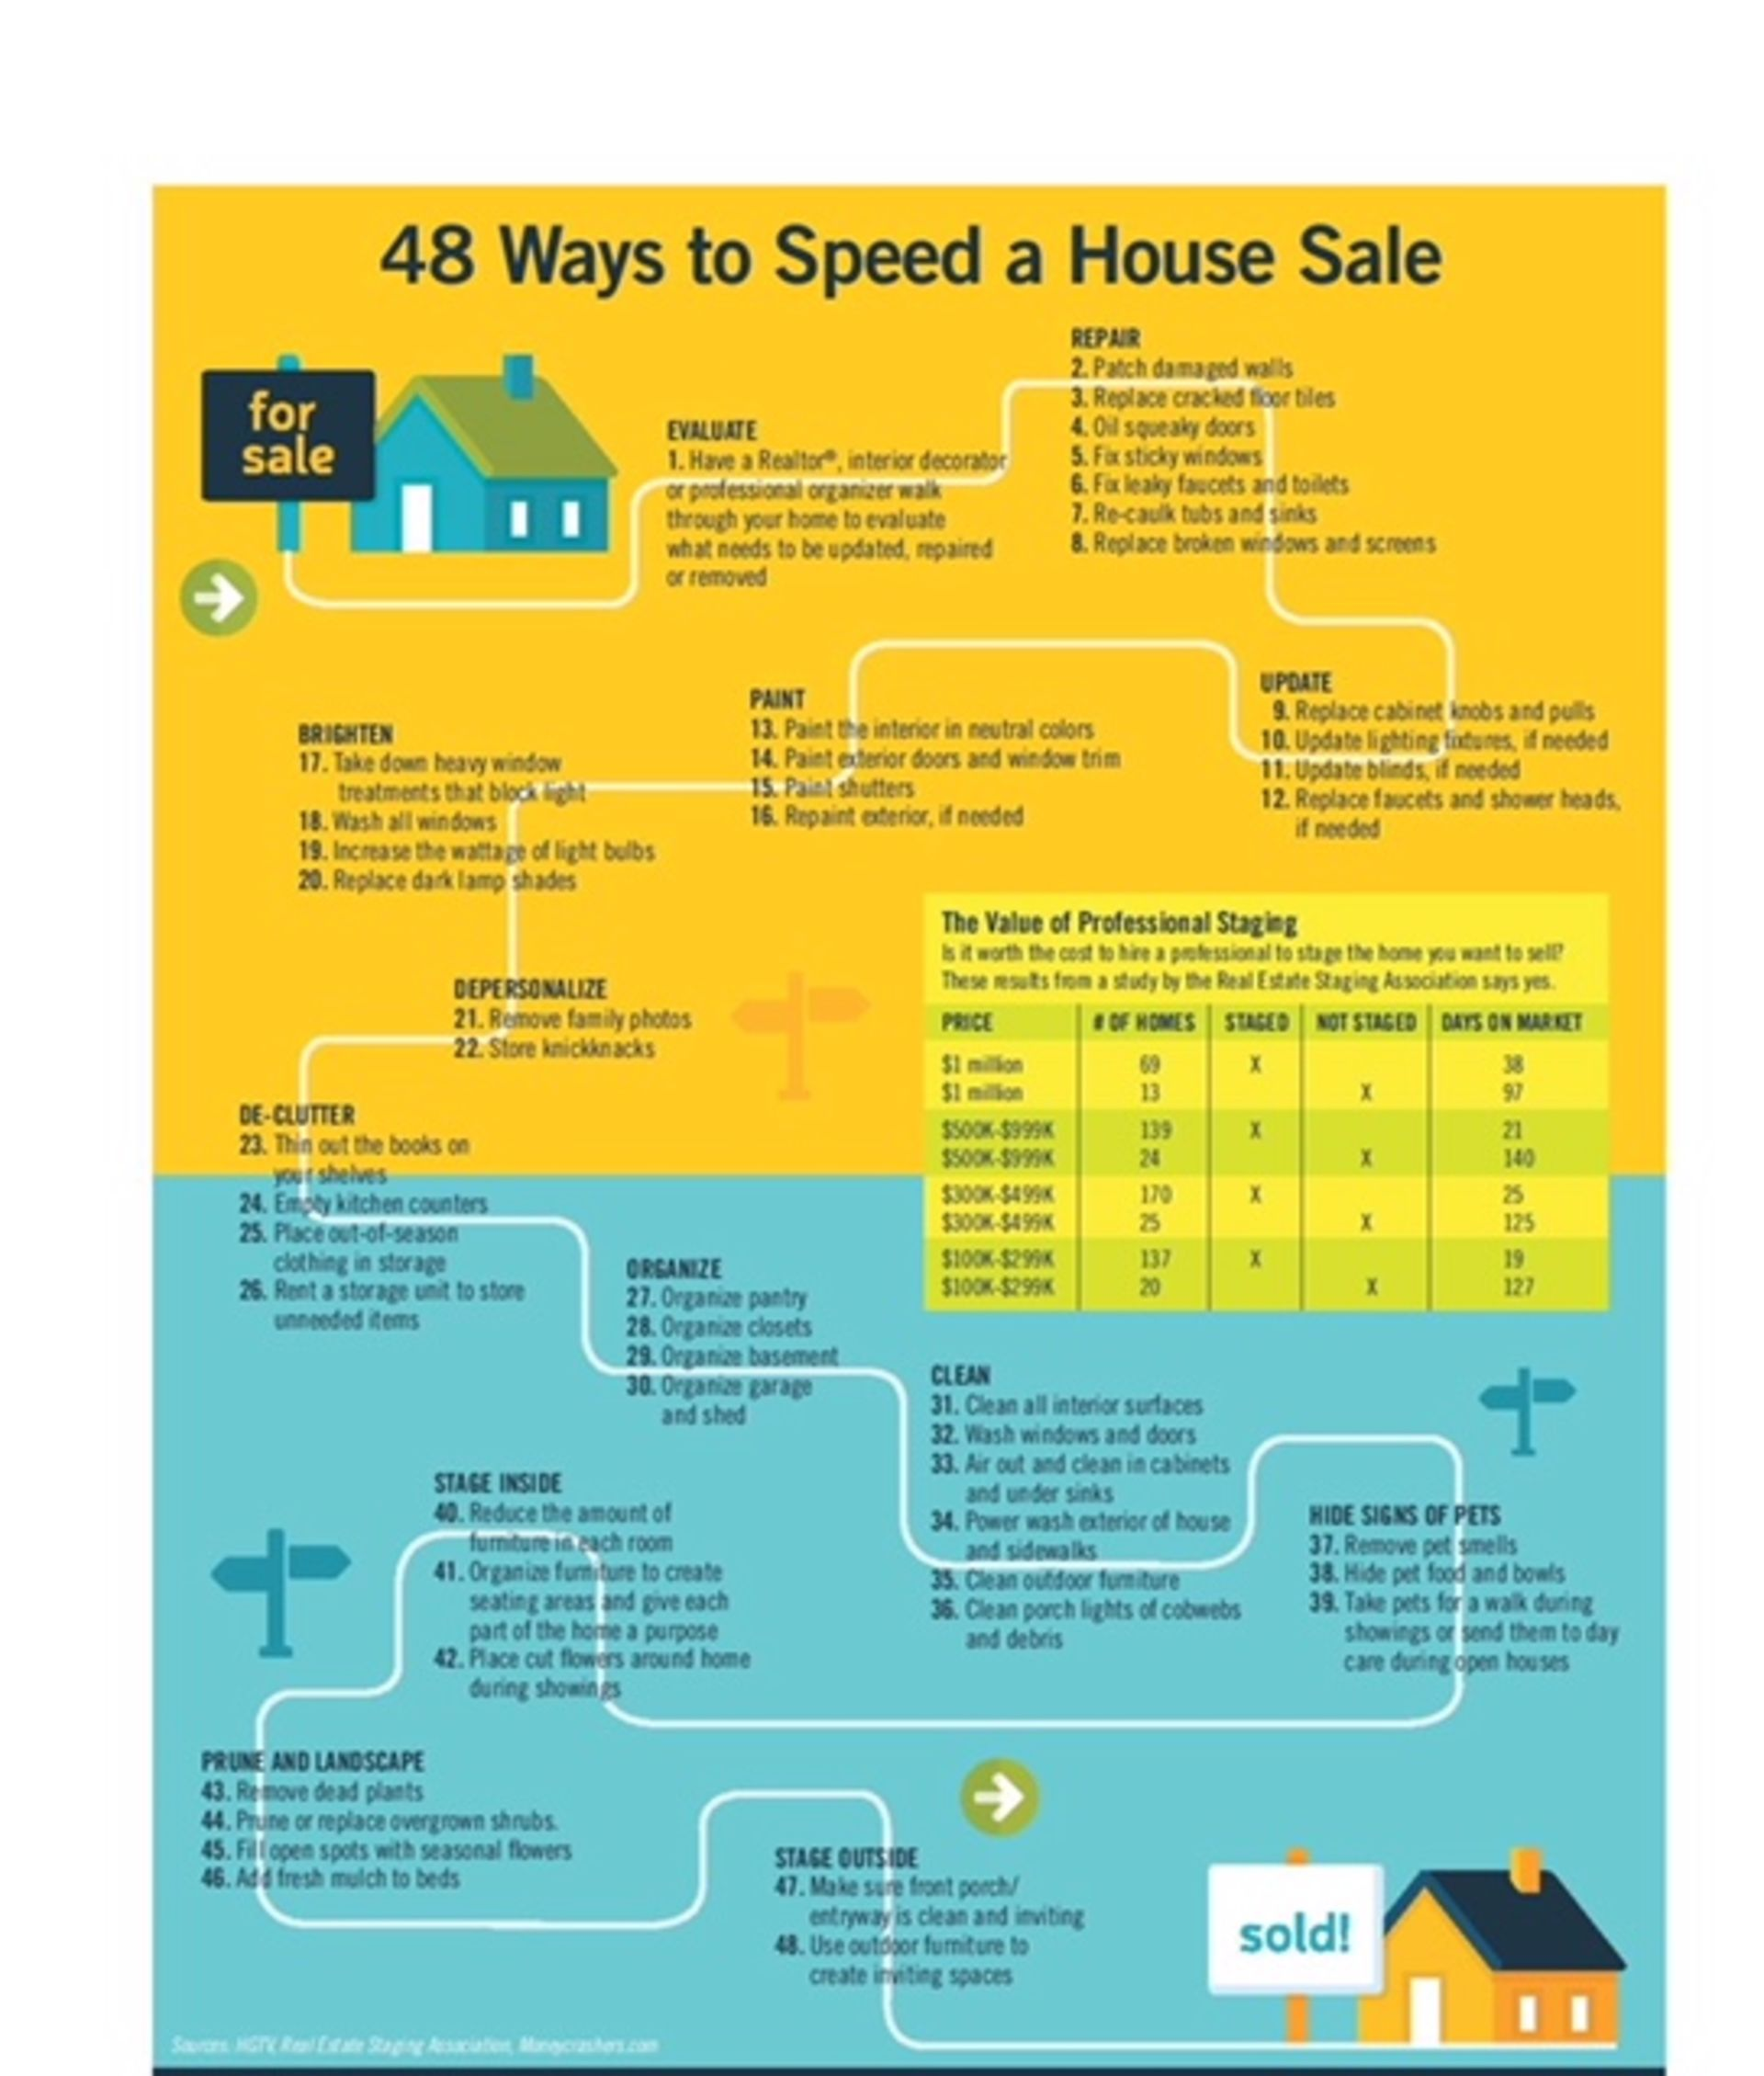 48 Way To Speed a House Sale